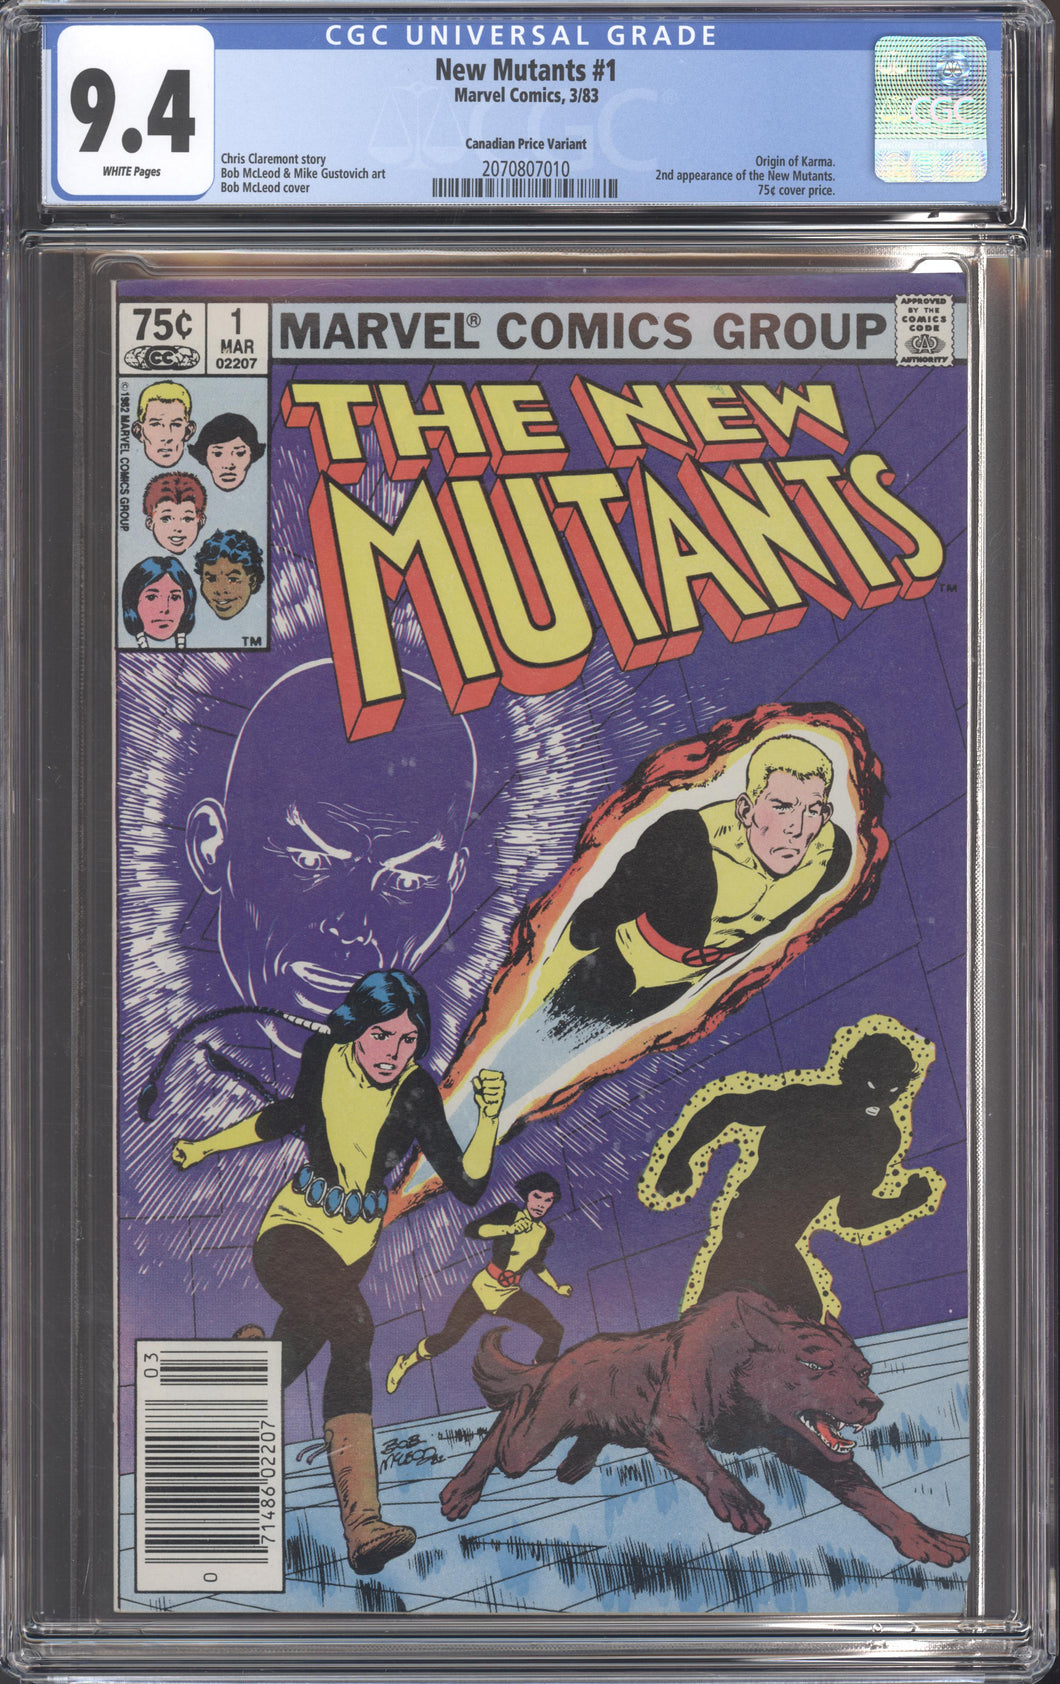 NEW MUTANTS #1 (1983 Marvel) CGC 9.4 NM RARE CANADIAN PRICE VARIANT